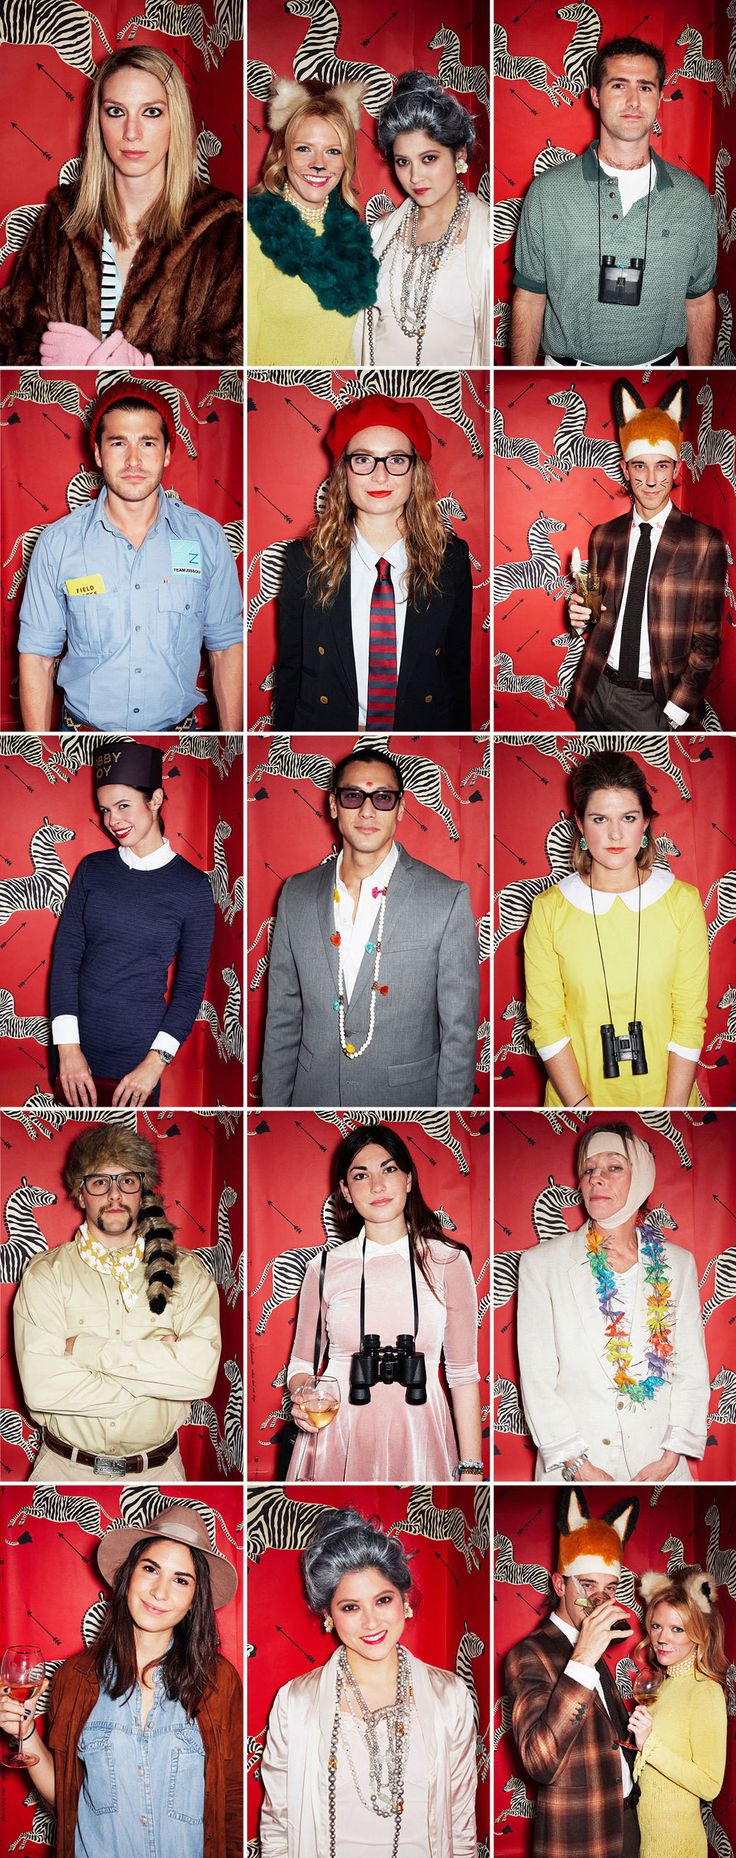 "A Wes Anderson-inspired party featured a photo booth with Scalamandre's iconic zebra-print wallpaper that appeared in Anderson's film ""The Royal Tenenbaums."" Photo: Alonzo Maciel. ""A Fabulously Good Fete"" written by Sarah Jean Shelton and produced by Samuel Masters. Lonny (December 2014/January 2015)."